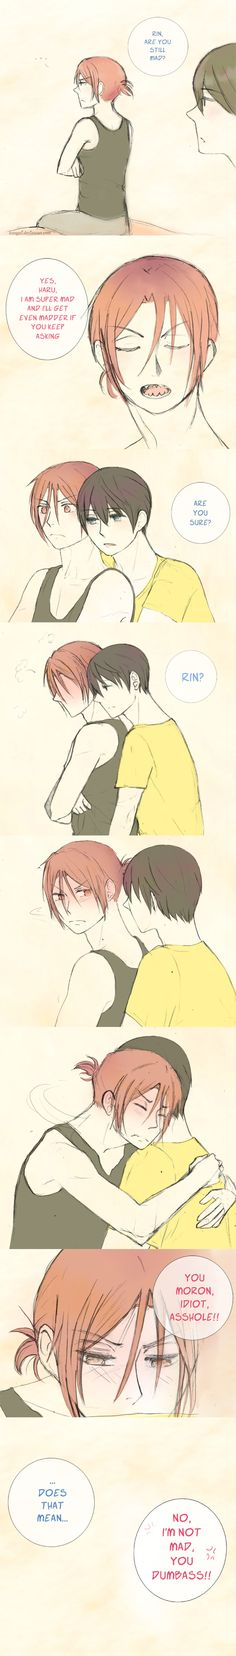 RinxHaru - Are you mad? by Pleionne on DeviantArt